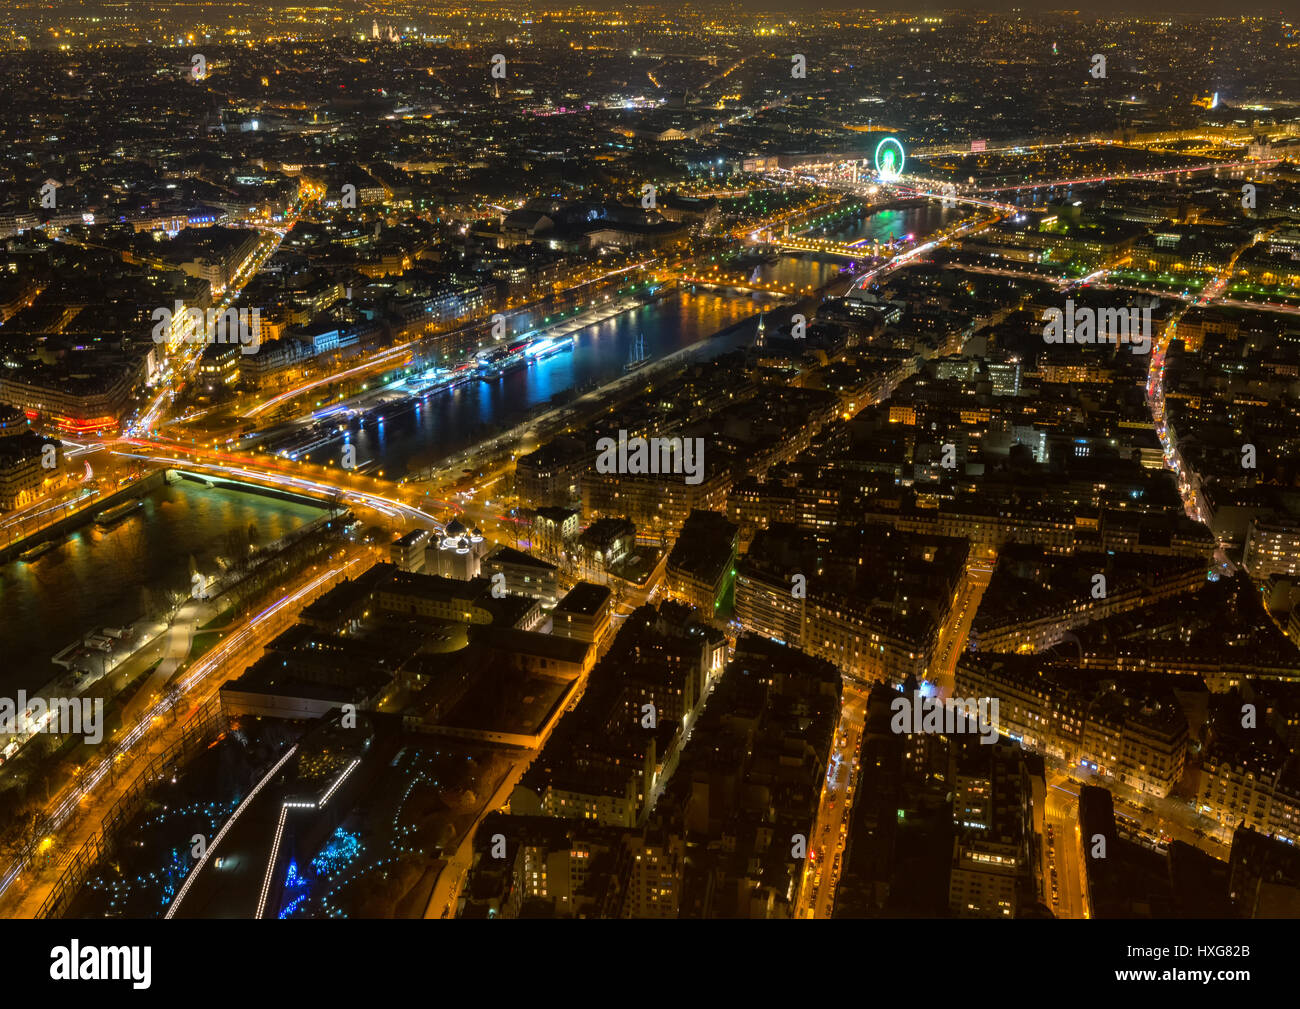 Night cityscape of Paris taken from the Eiffel Tower, France - Stock Image